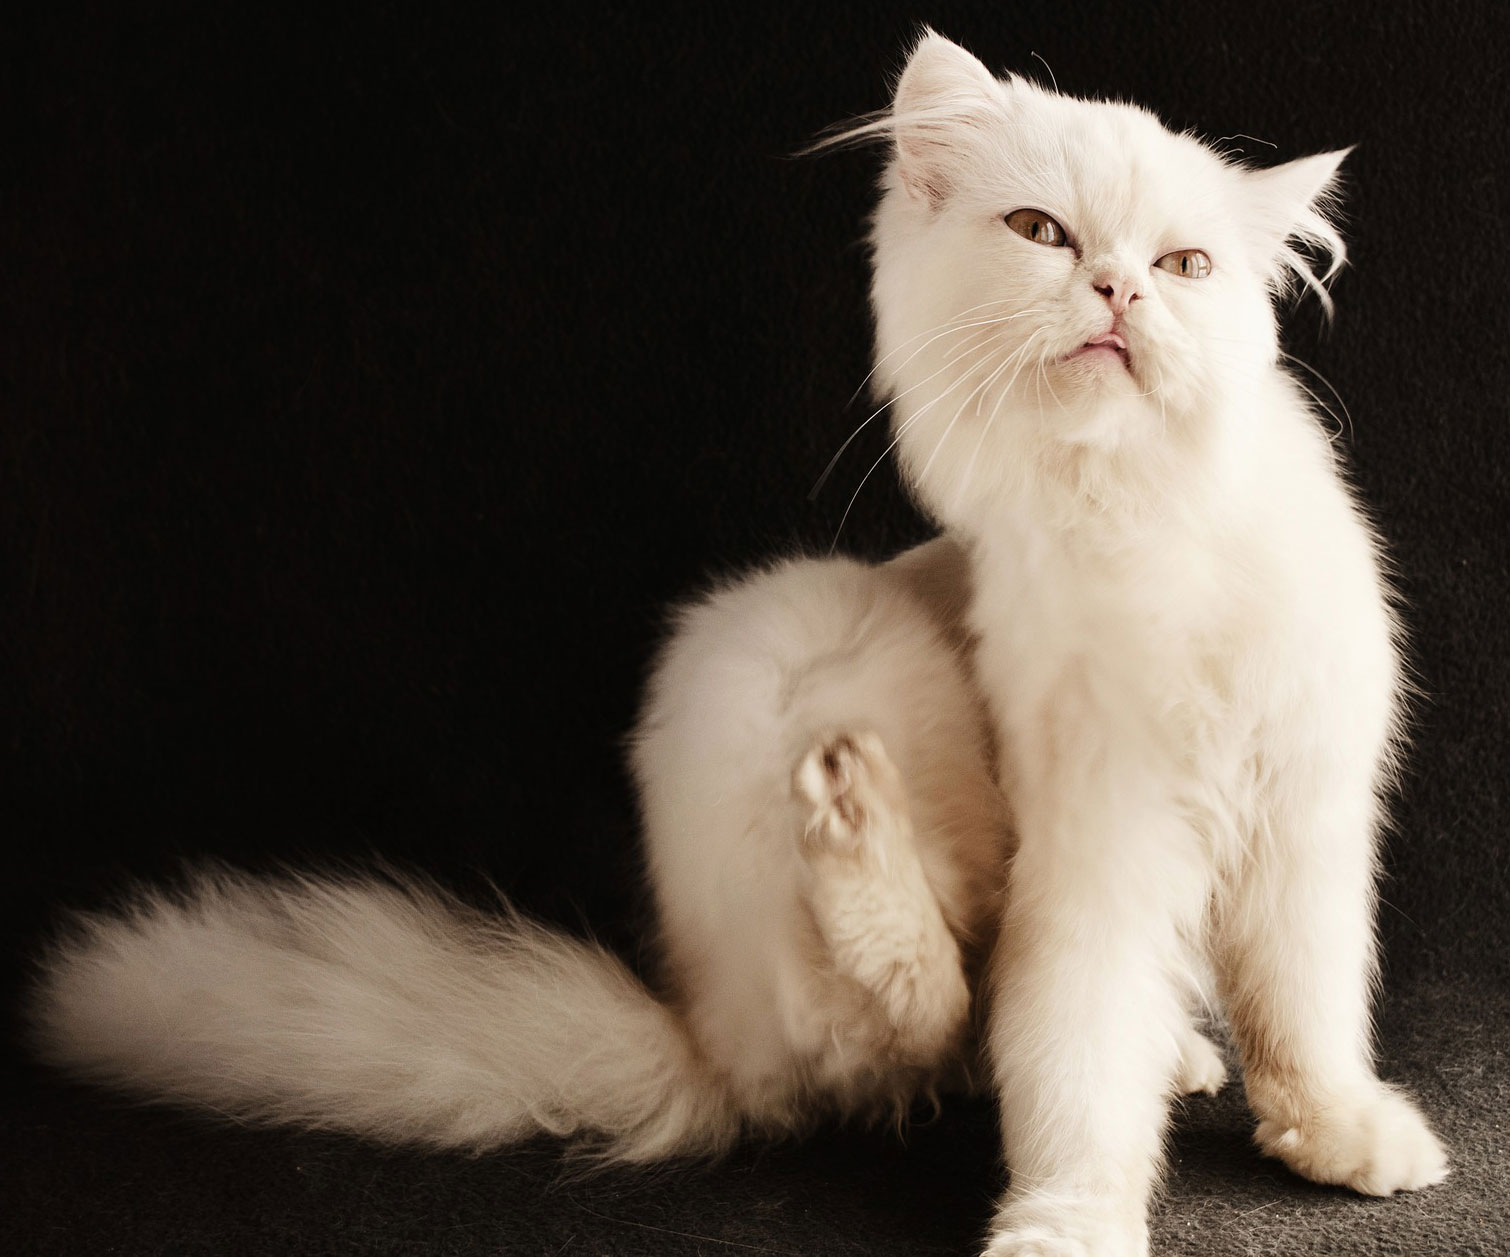 A fluffy white cat scratches her side with her hind leg.